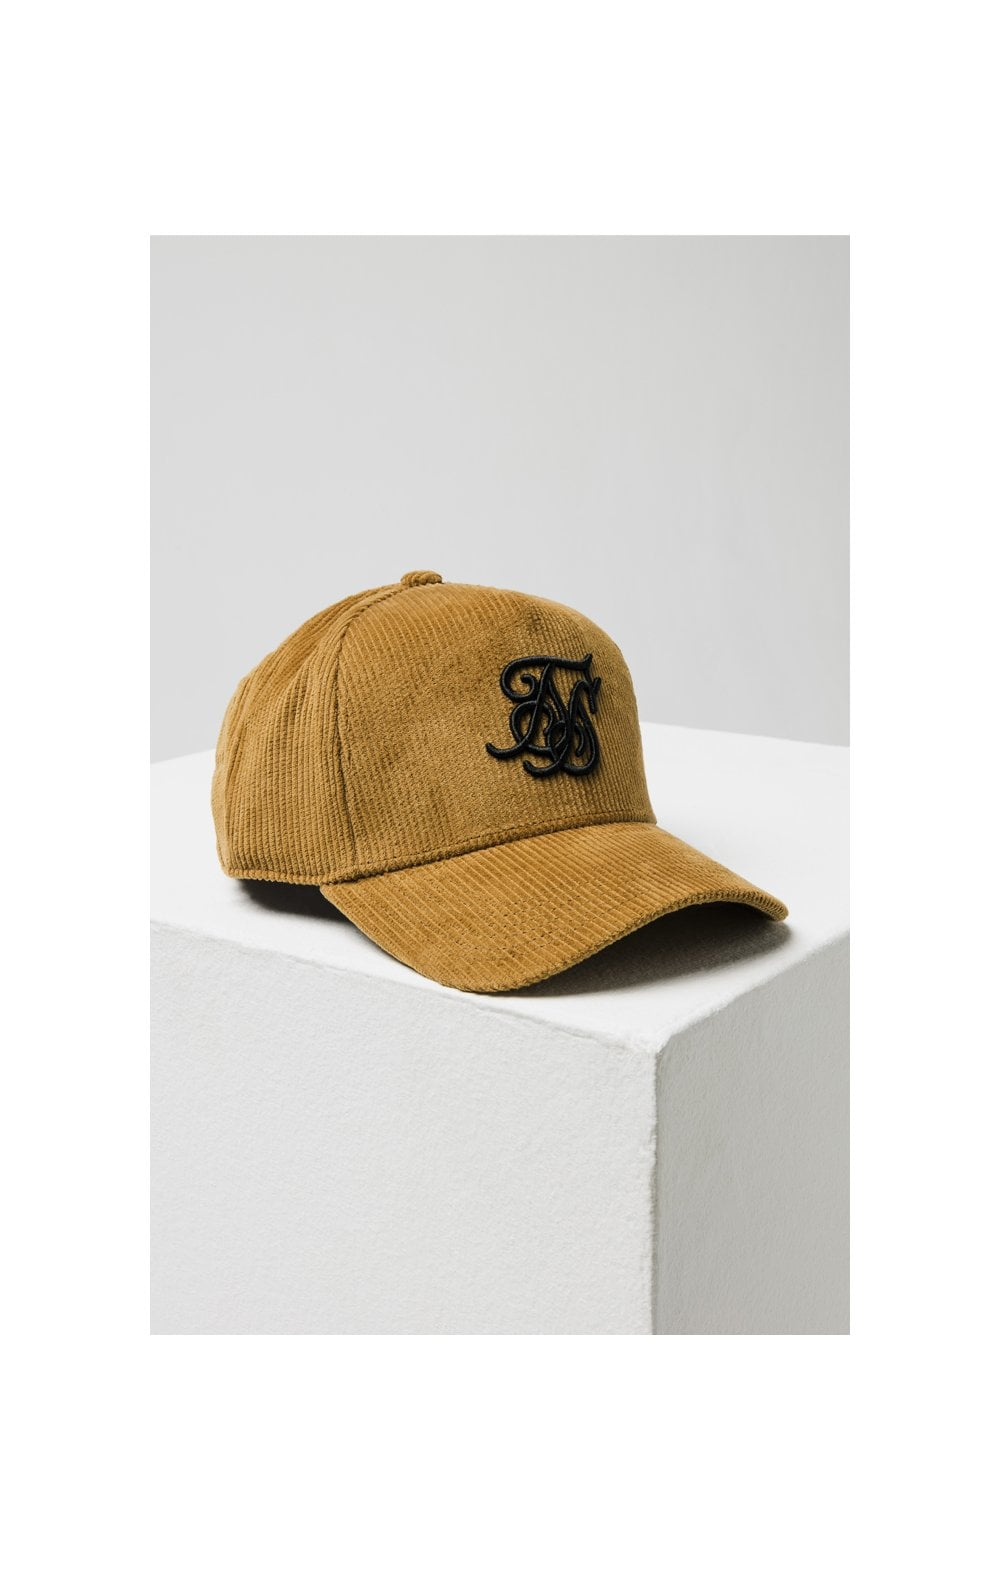 Load image into Gallery viewer, SikSilk Corduroy Full Trucker - Mustard (2)